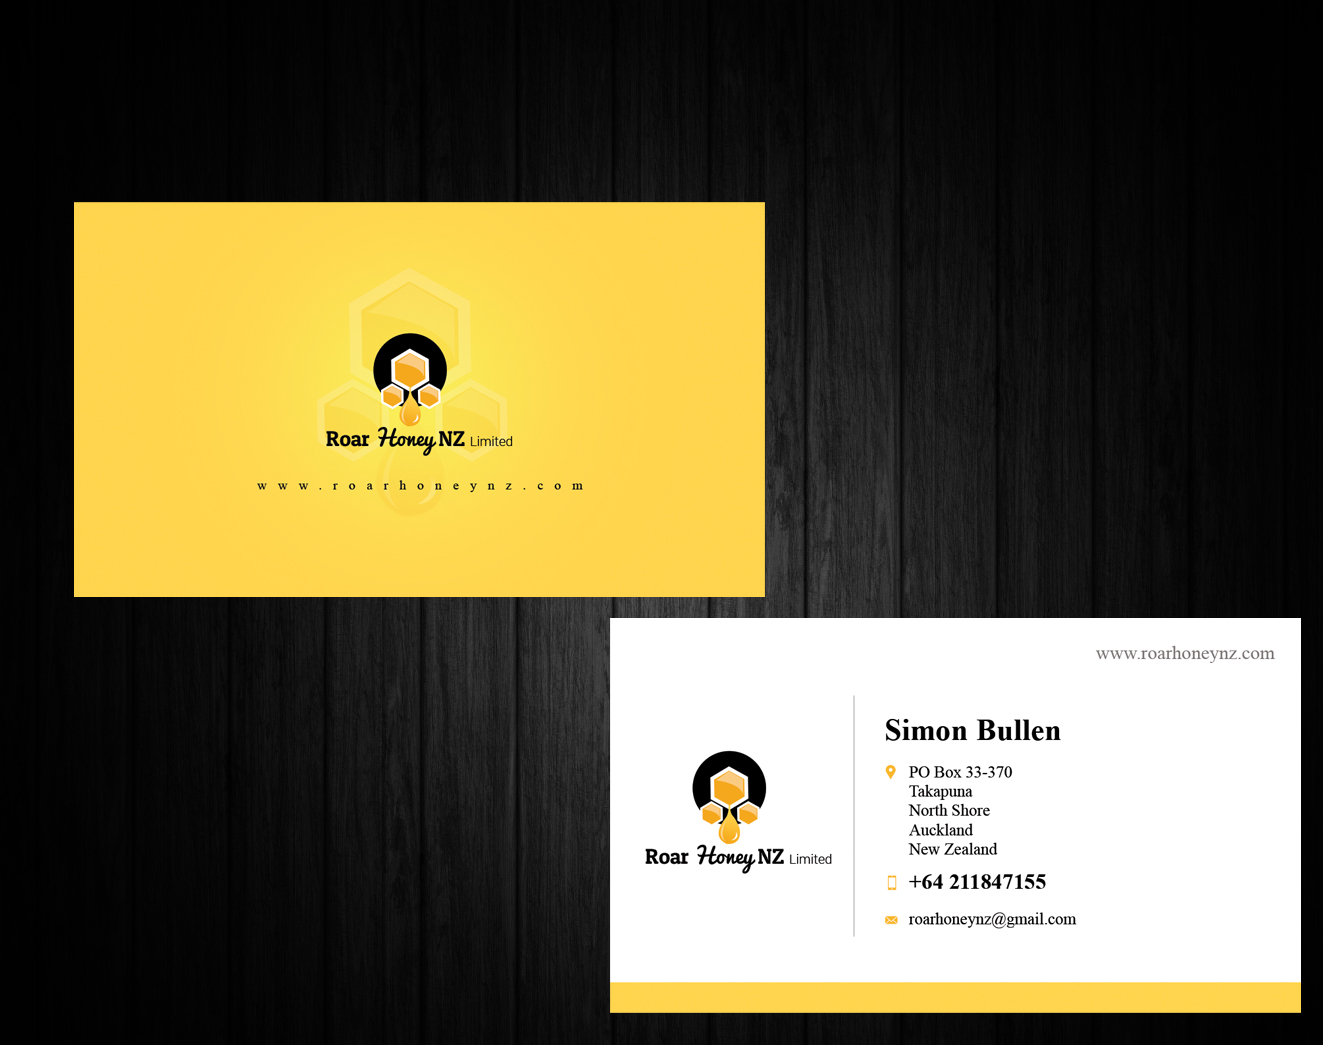 Modern professional wholesale business card design for roar honey business card design by ssensarma for roar honey nz limited design 13831090 reheart Images